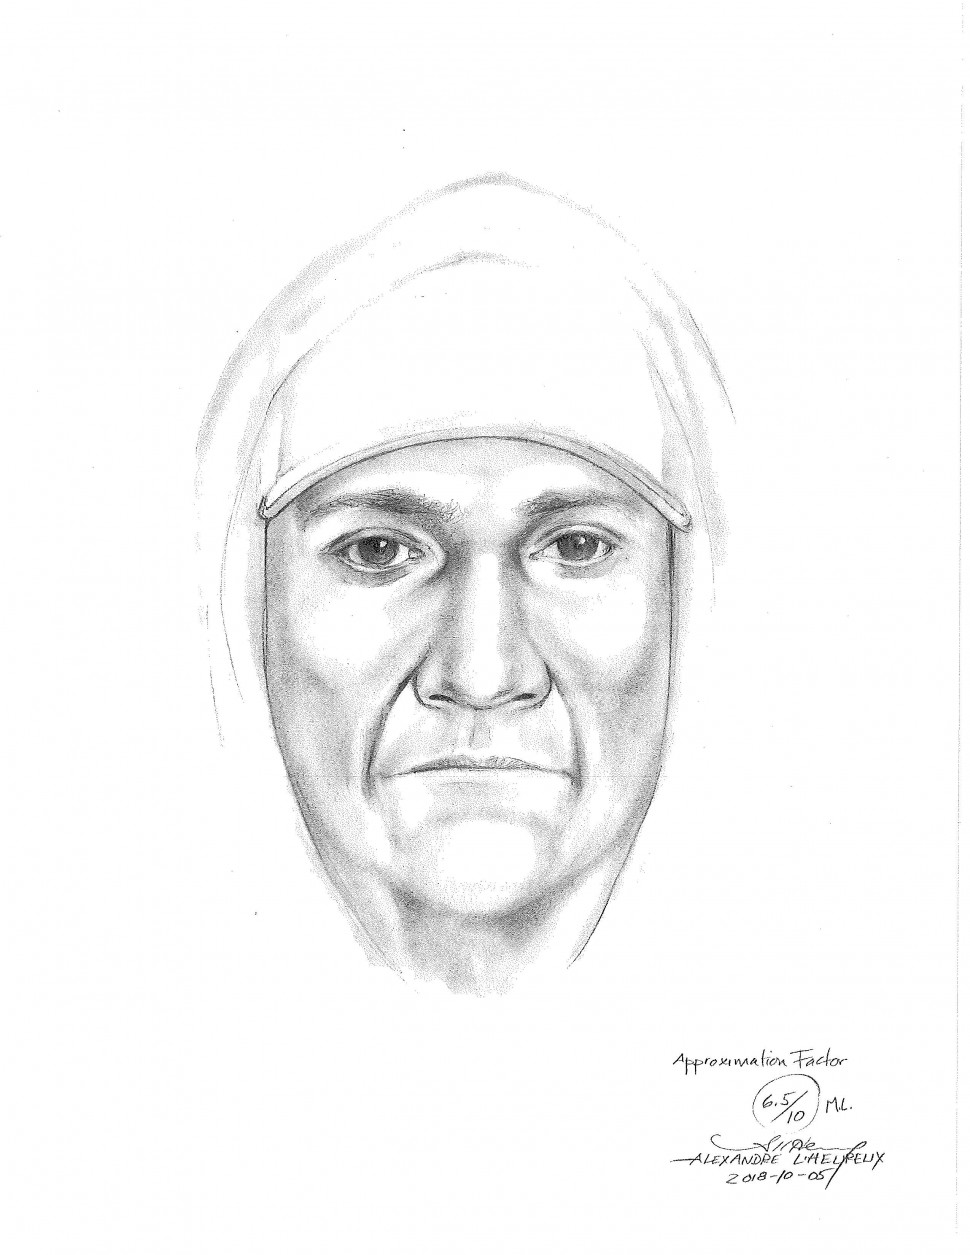 RCMP Release Sketch Of Home Invasion Suspect